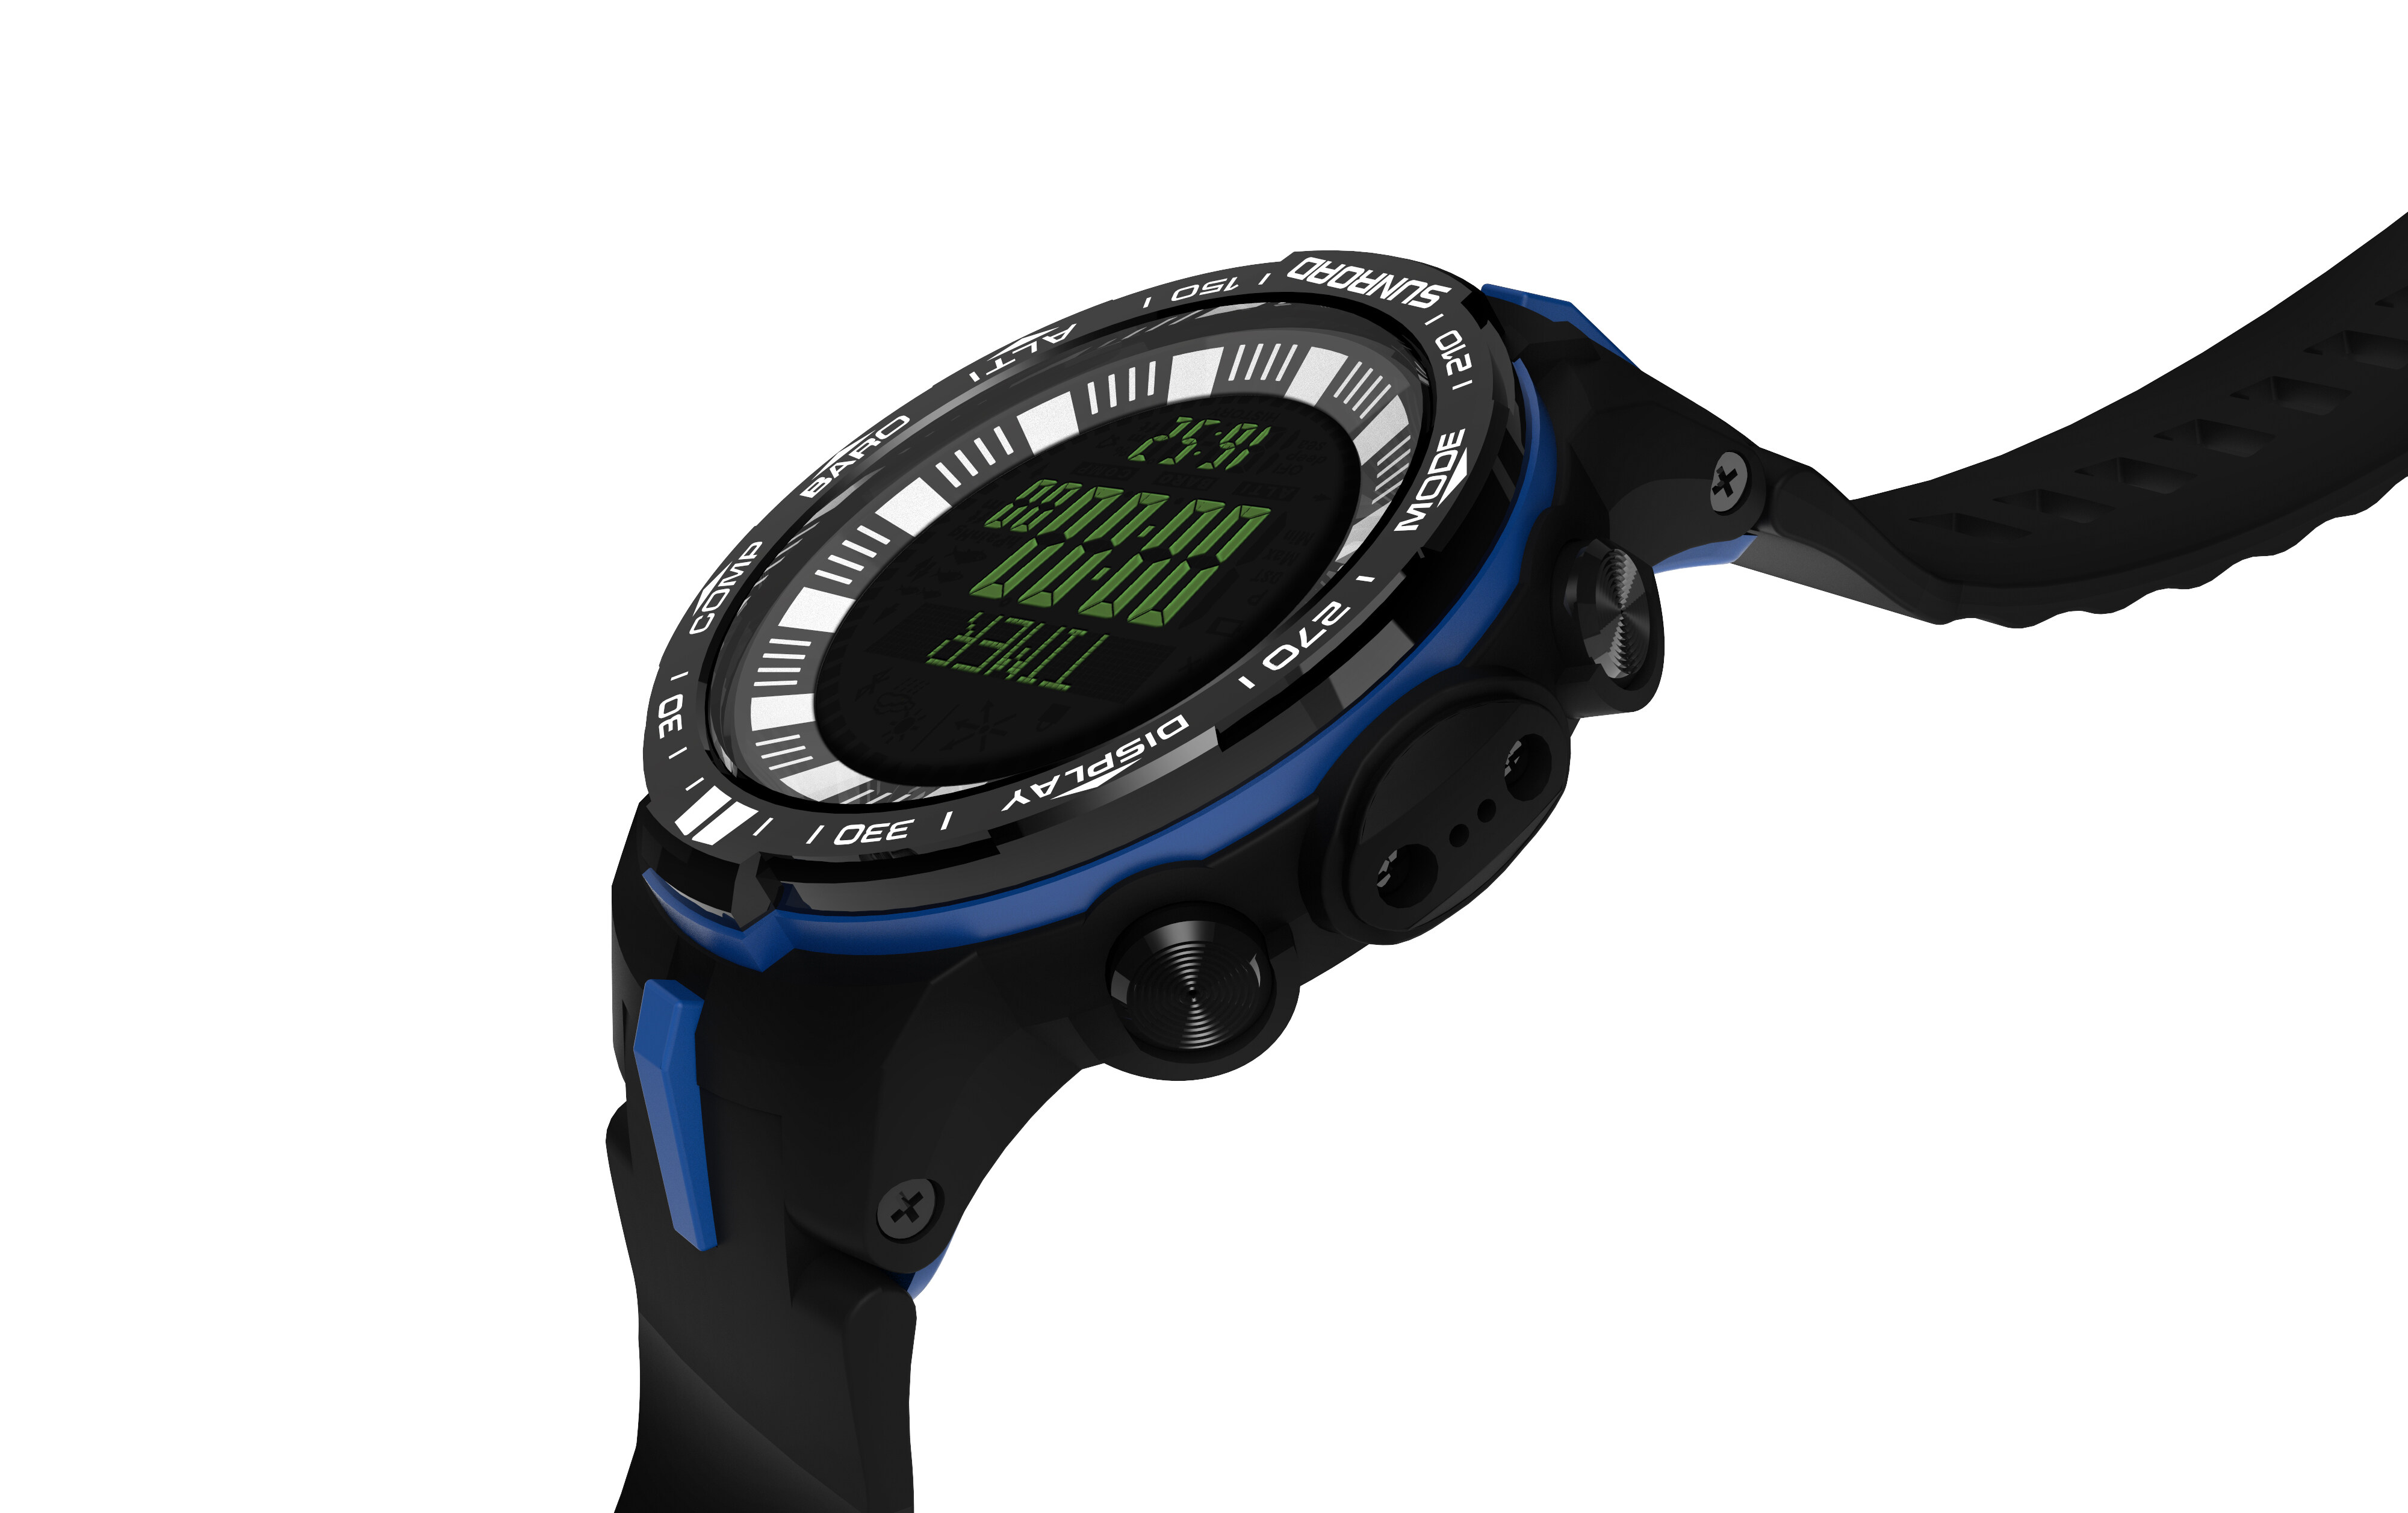 Fishing watch with powerful outdoor climb data analyse altitude barometer compass fishing index waterproof 9